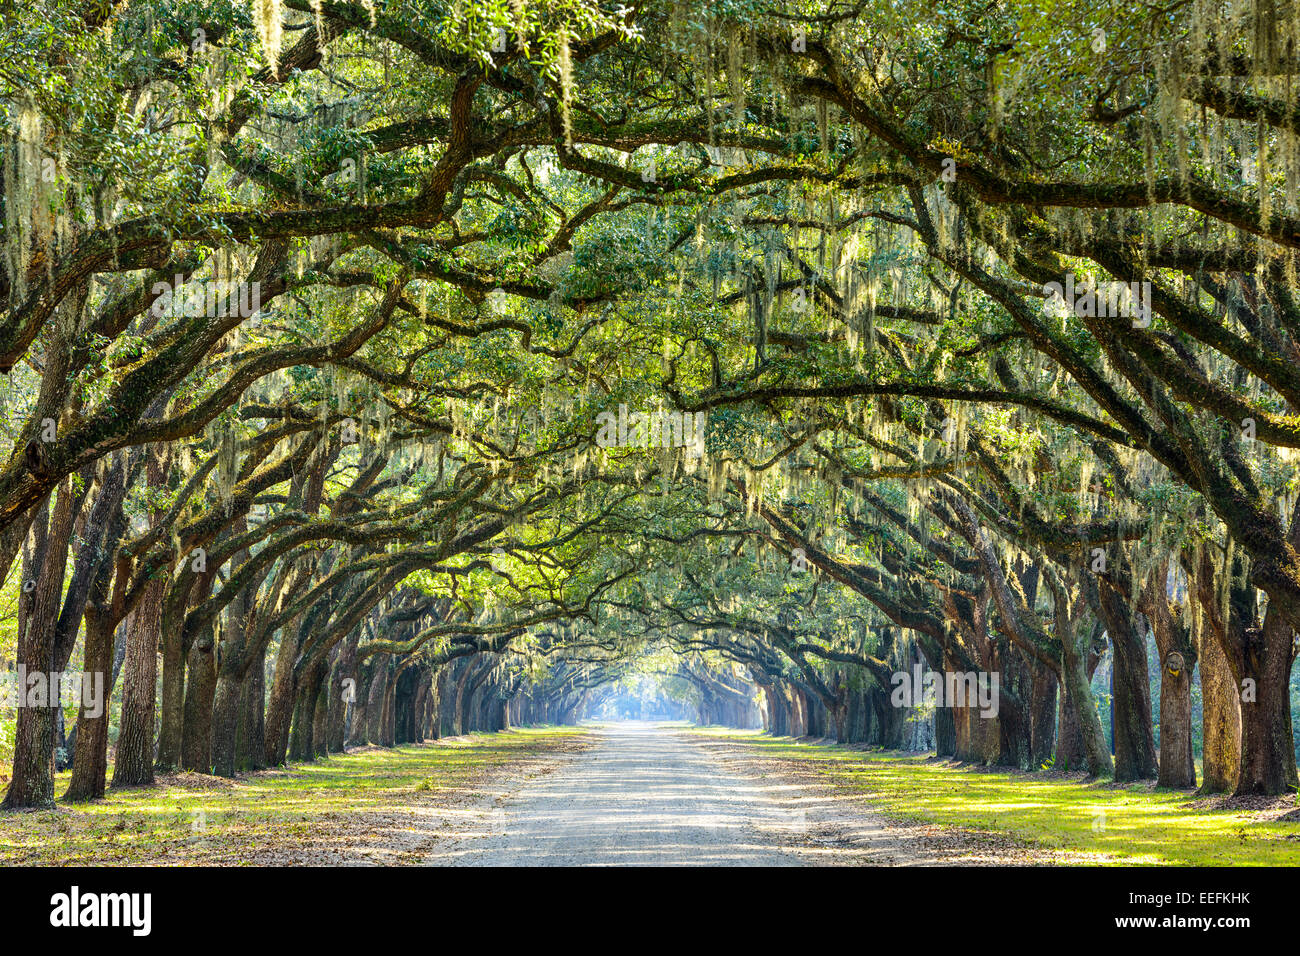 Savannah, Georgia, USA oak tree lined road at historic Wormsloe Plantation. - Stock Image